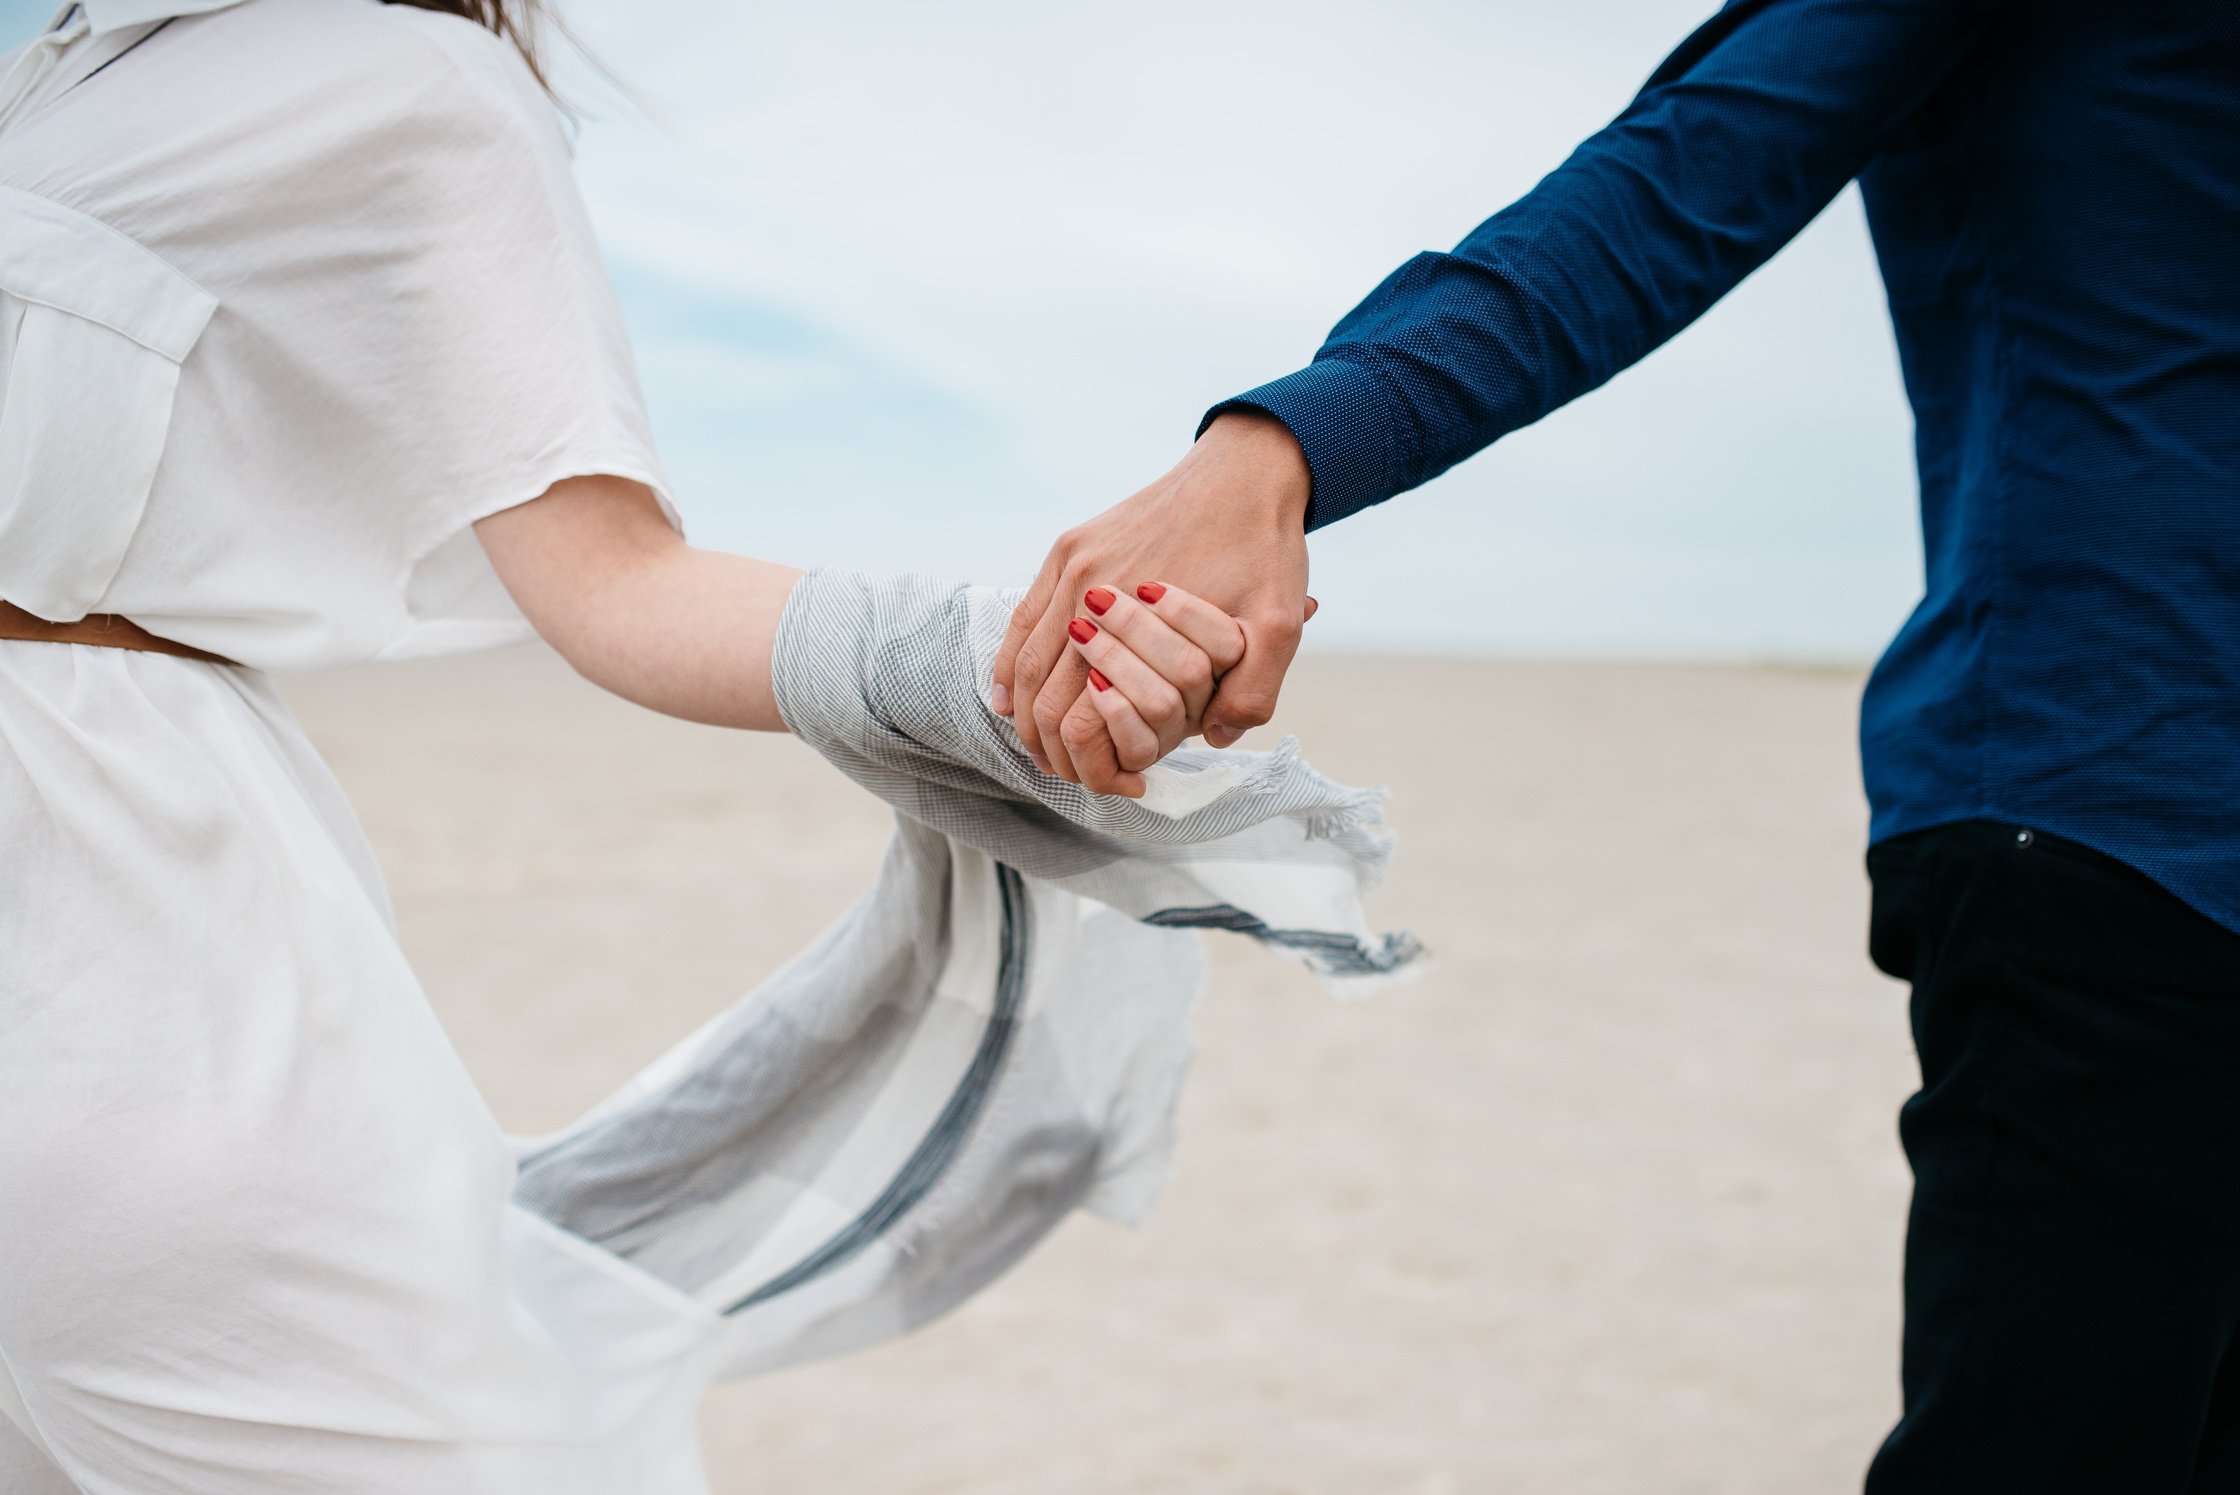 What Sets Us Apart - Receive an individual or couples comprehensive assessment with a fertility treatment program3, 6, 12 month programs with a heavy emphasis on patient education and partnership with your providerGentle, effective acupuncture, herbal therapy, and nutritional guidance based on research studies